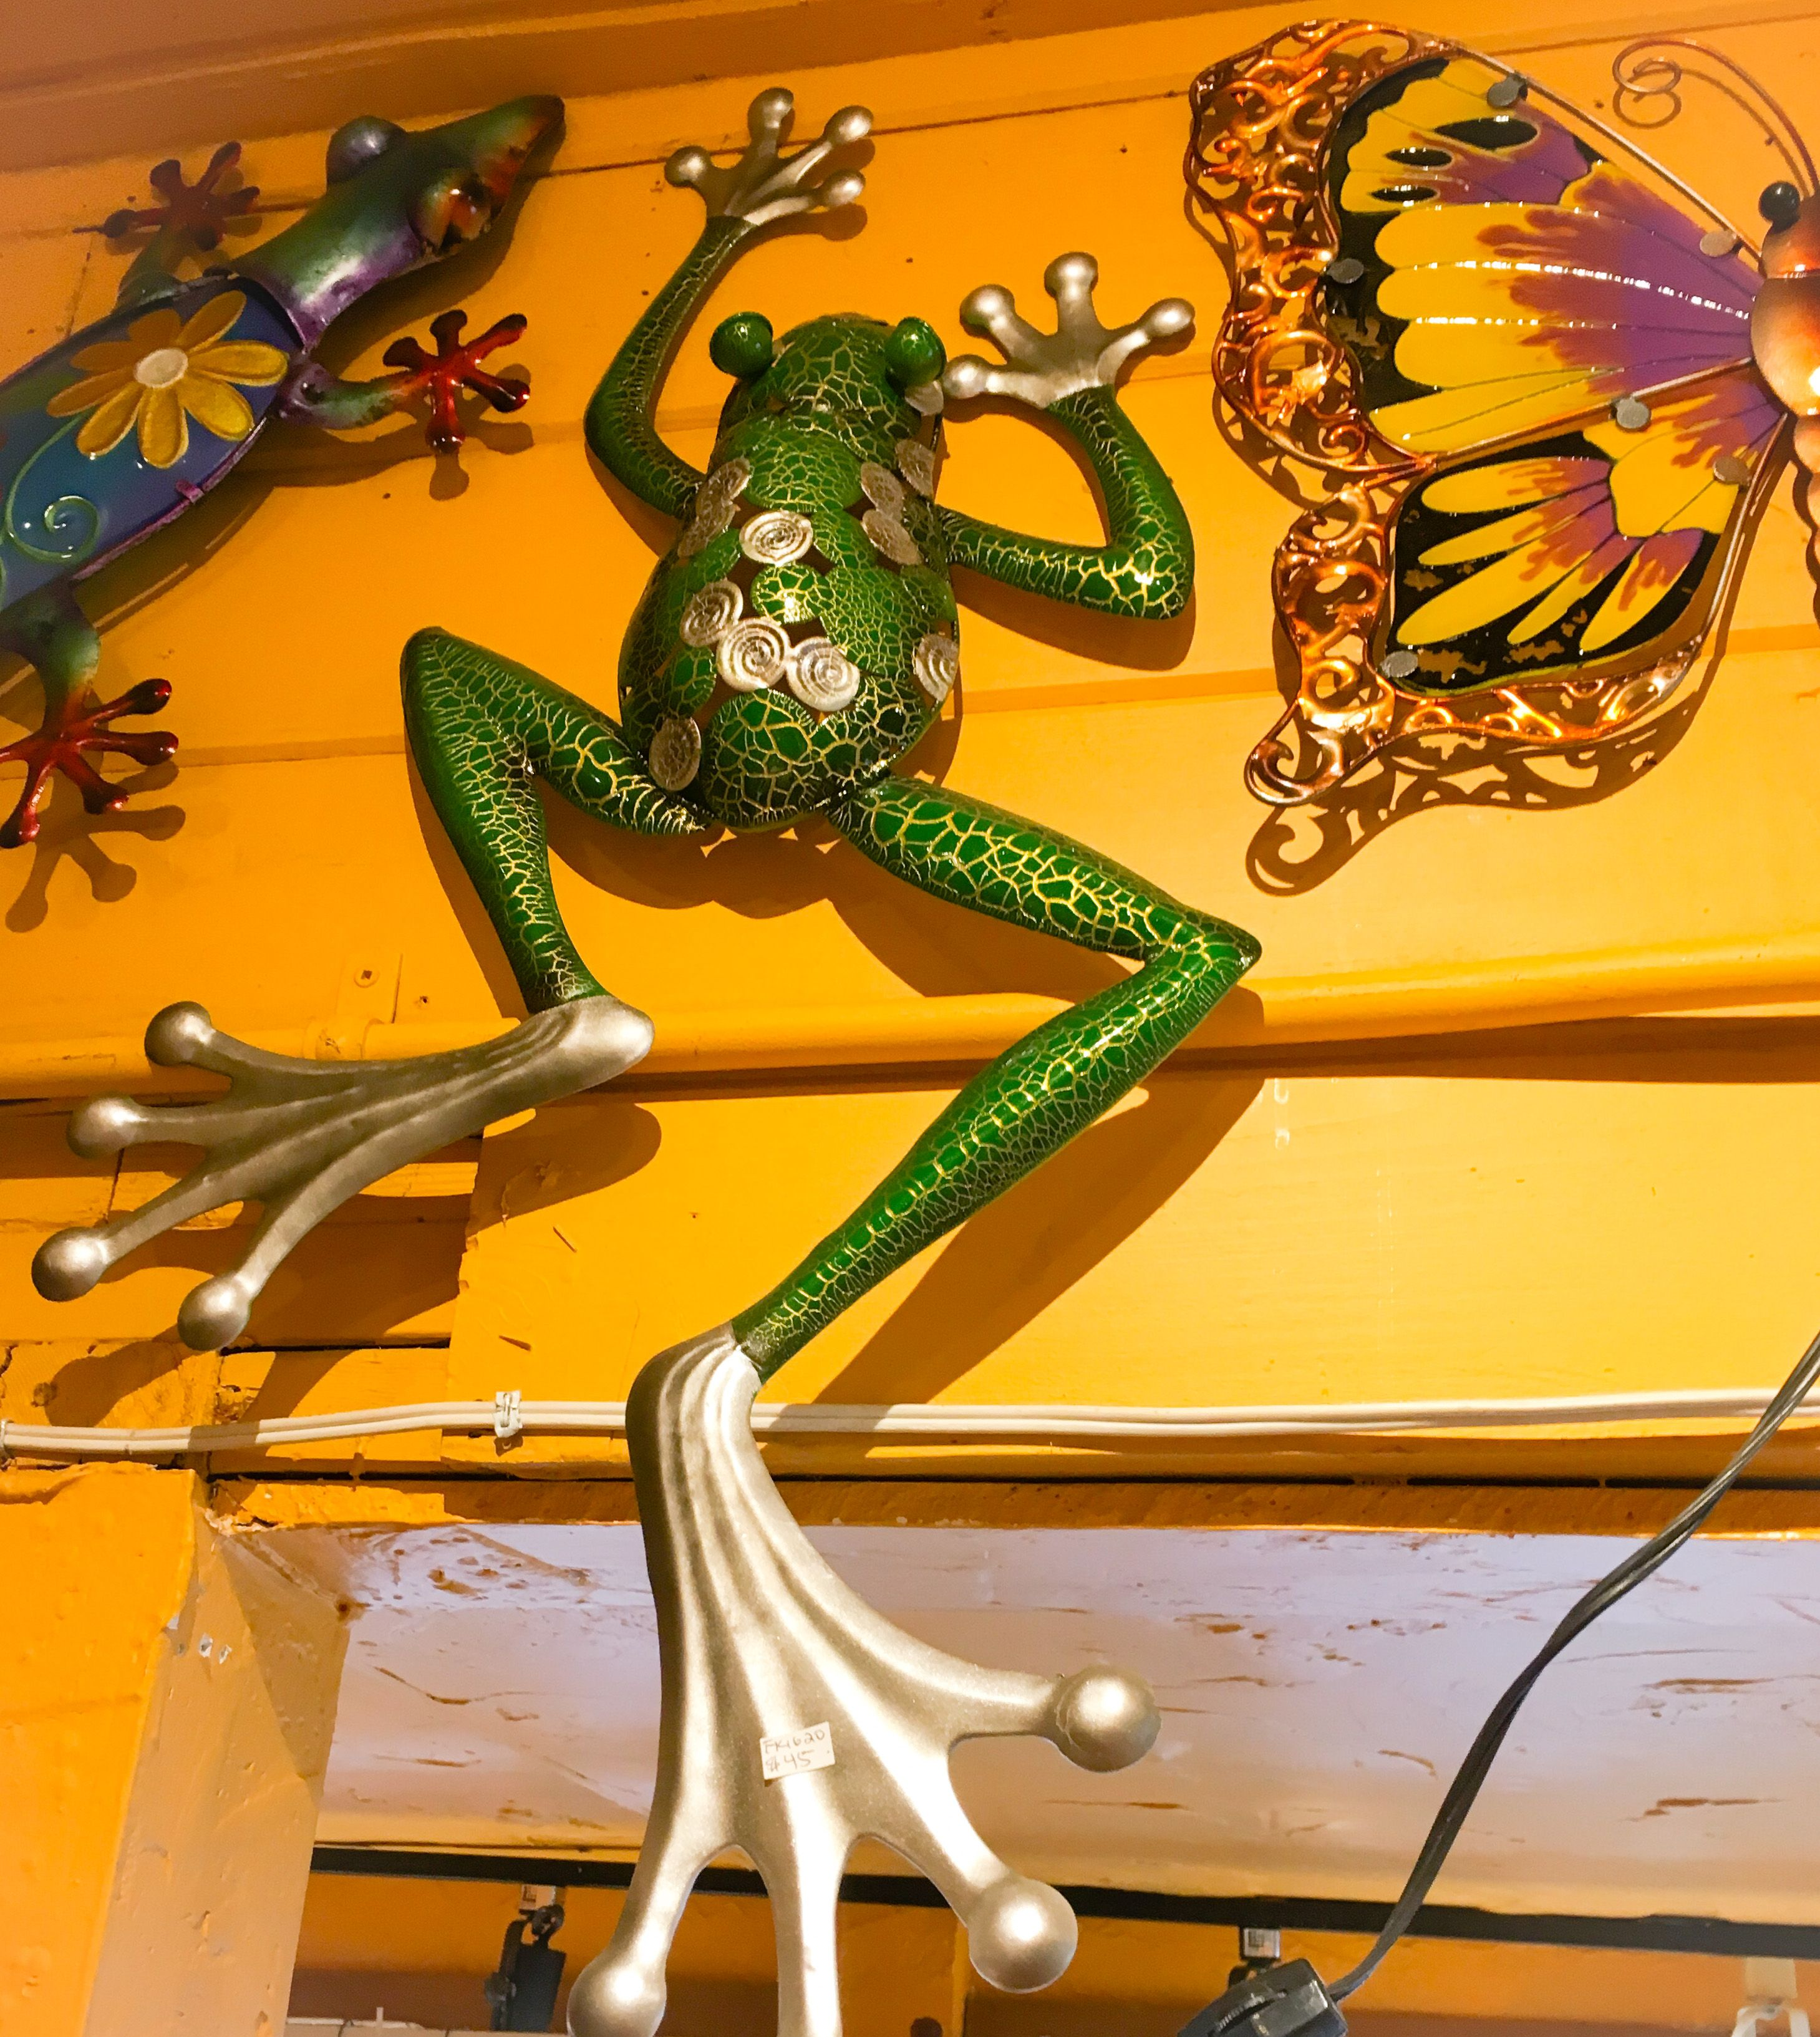 Metal wall Art - Frogs, Lizards & Butterflies @ CasaLifestyles.com ...